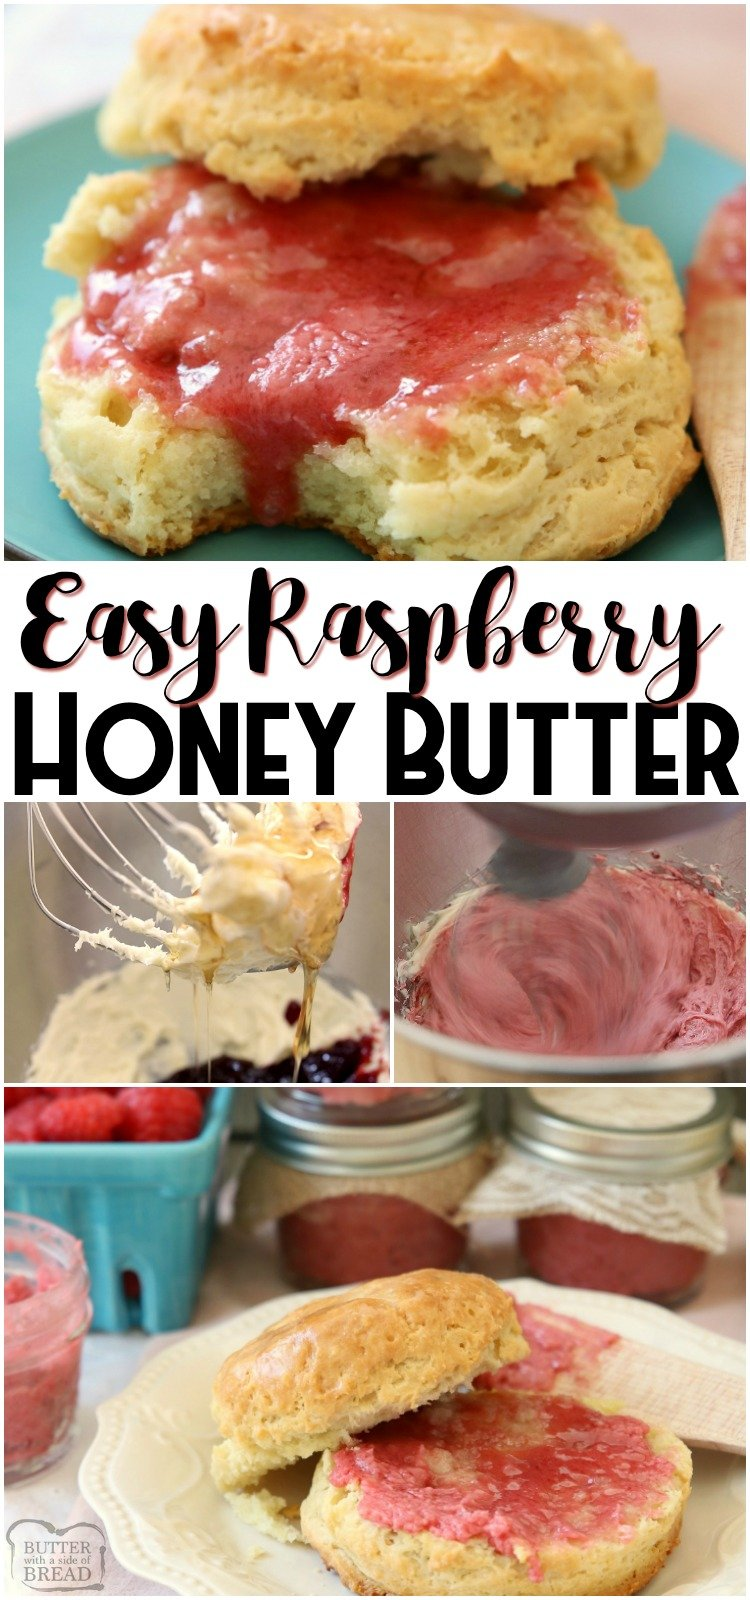 Raspberry Honey Butter recipe with just 4 ingredients and is blow-your-mind delicious! Simple honey butter recipe that's smooth, creamy and has great flavor. #butter #honeybutter #honey #raspberry #homemade #bread #spread #recipe from BUTTER WITH A SIDE OF BREAD